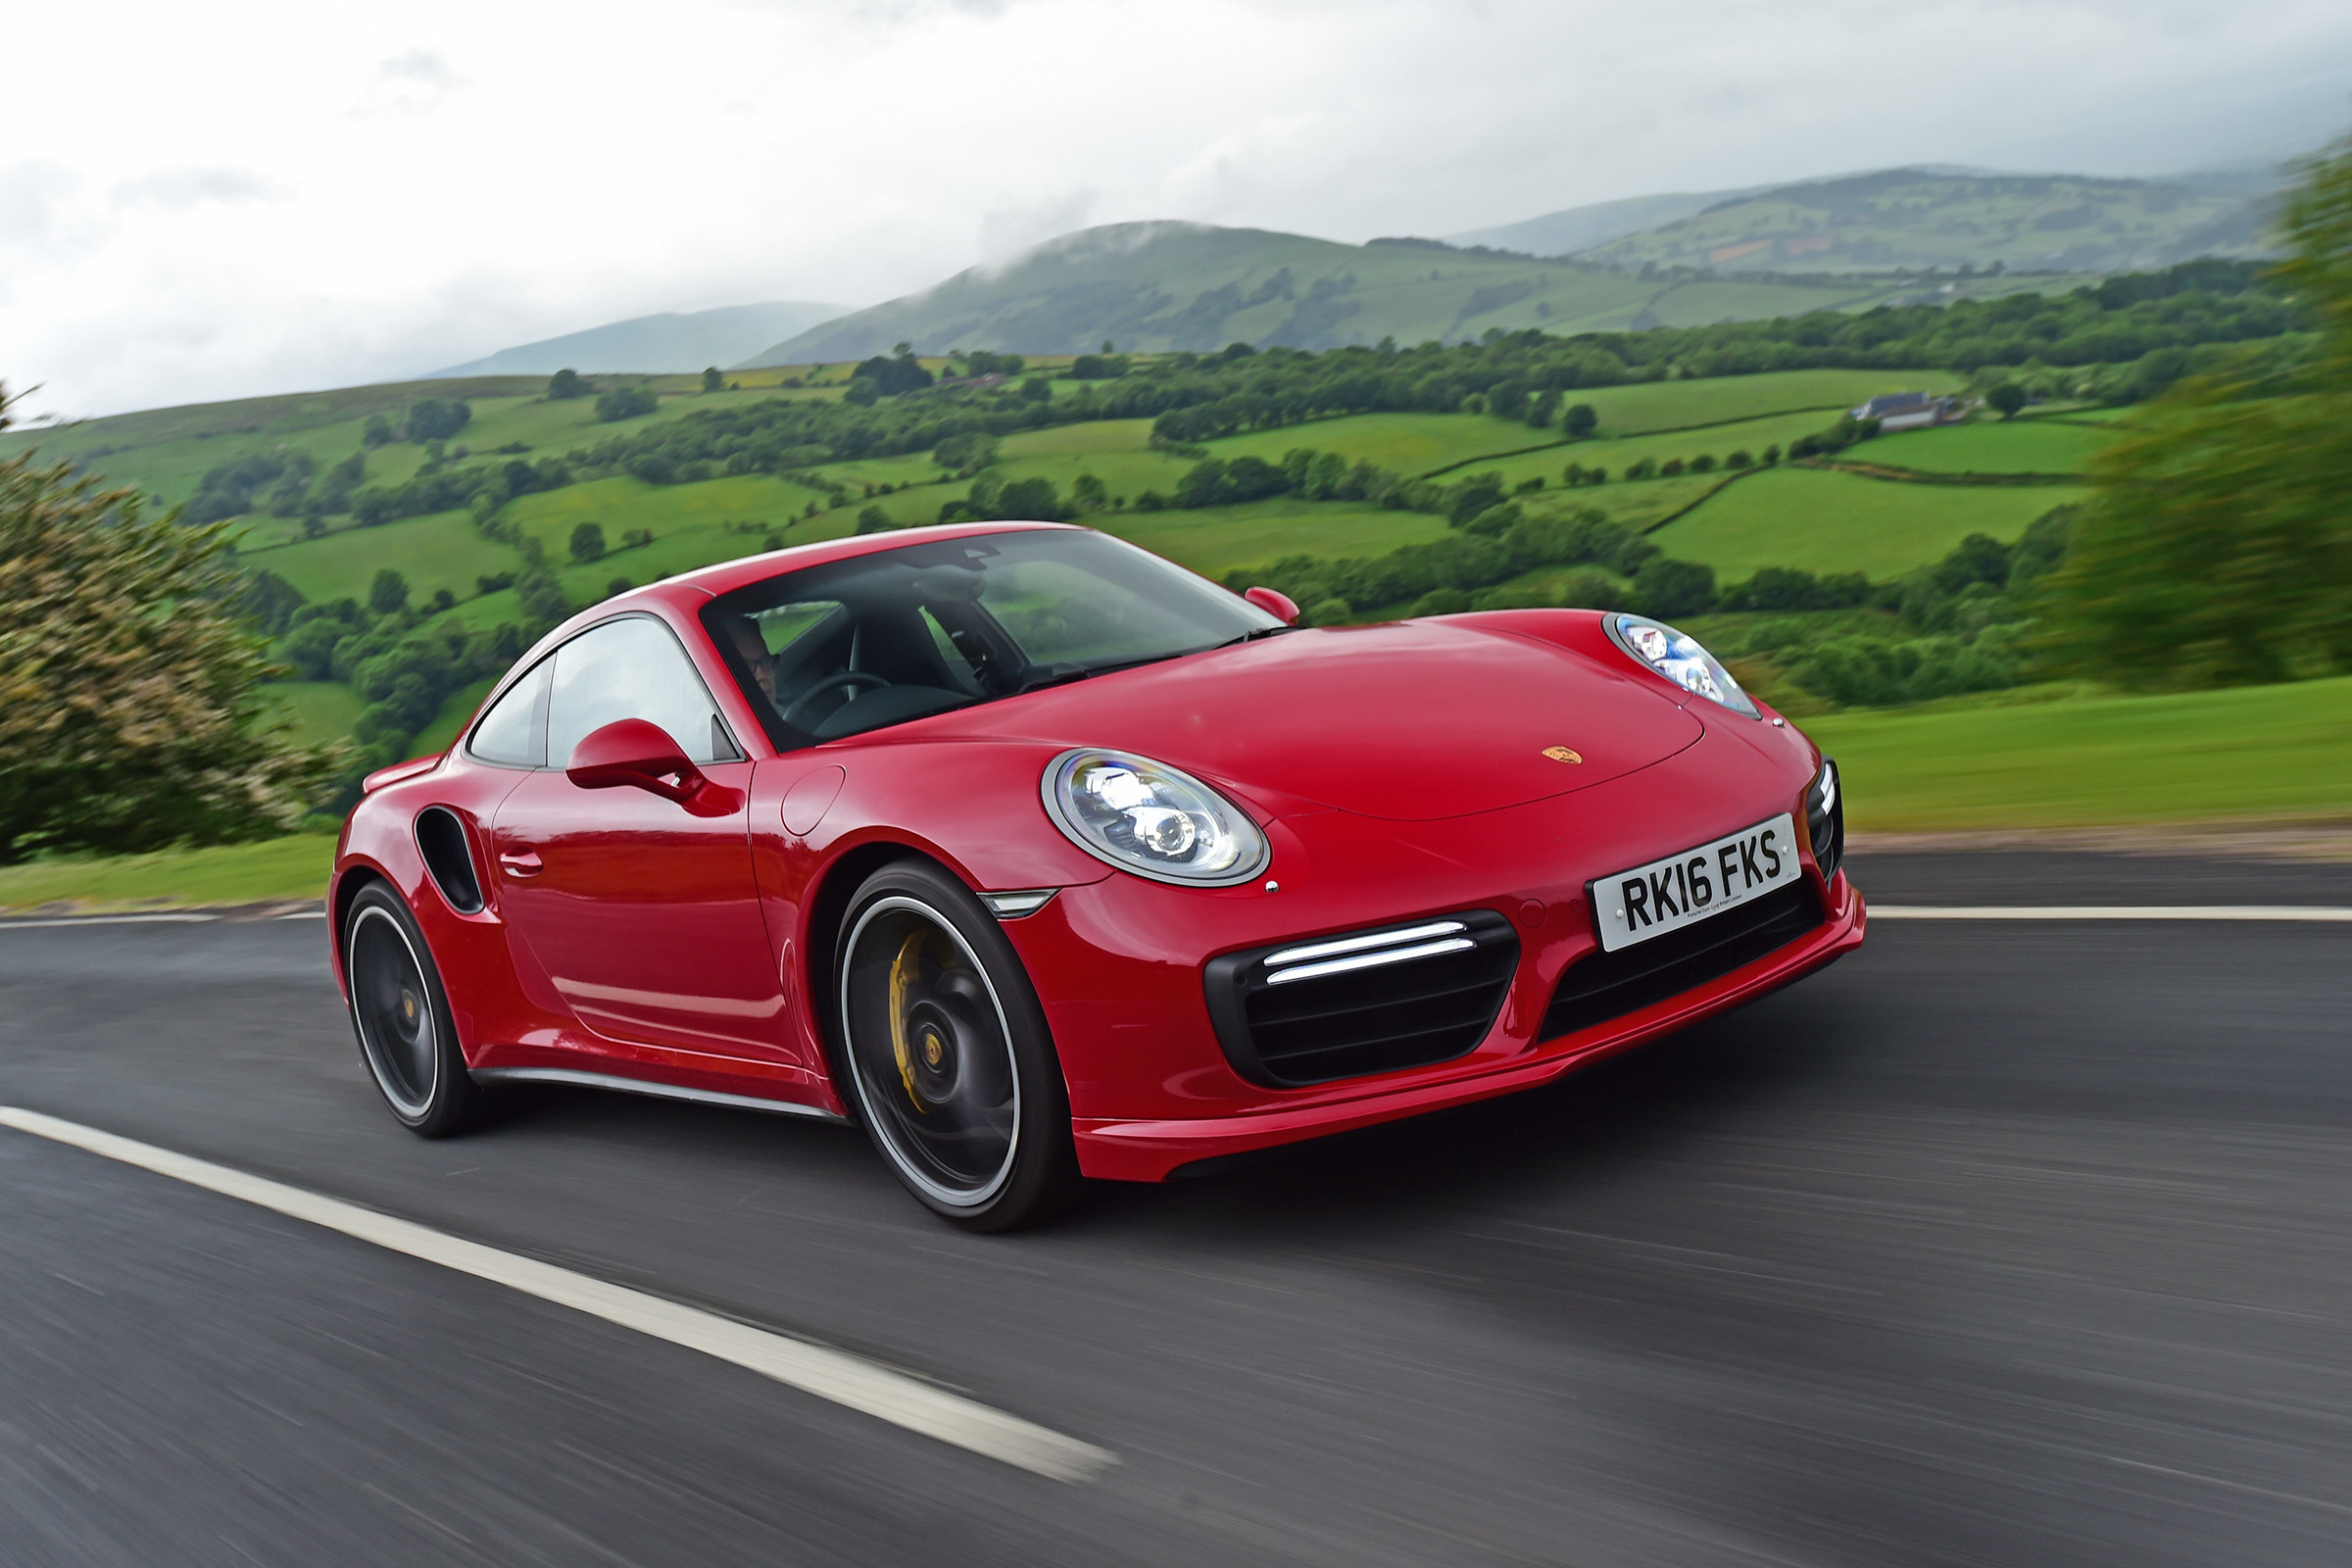 Porsche 911 Turbo Wallpapers Pictures Images 2400x1600